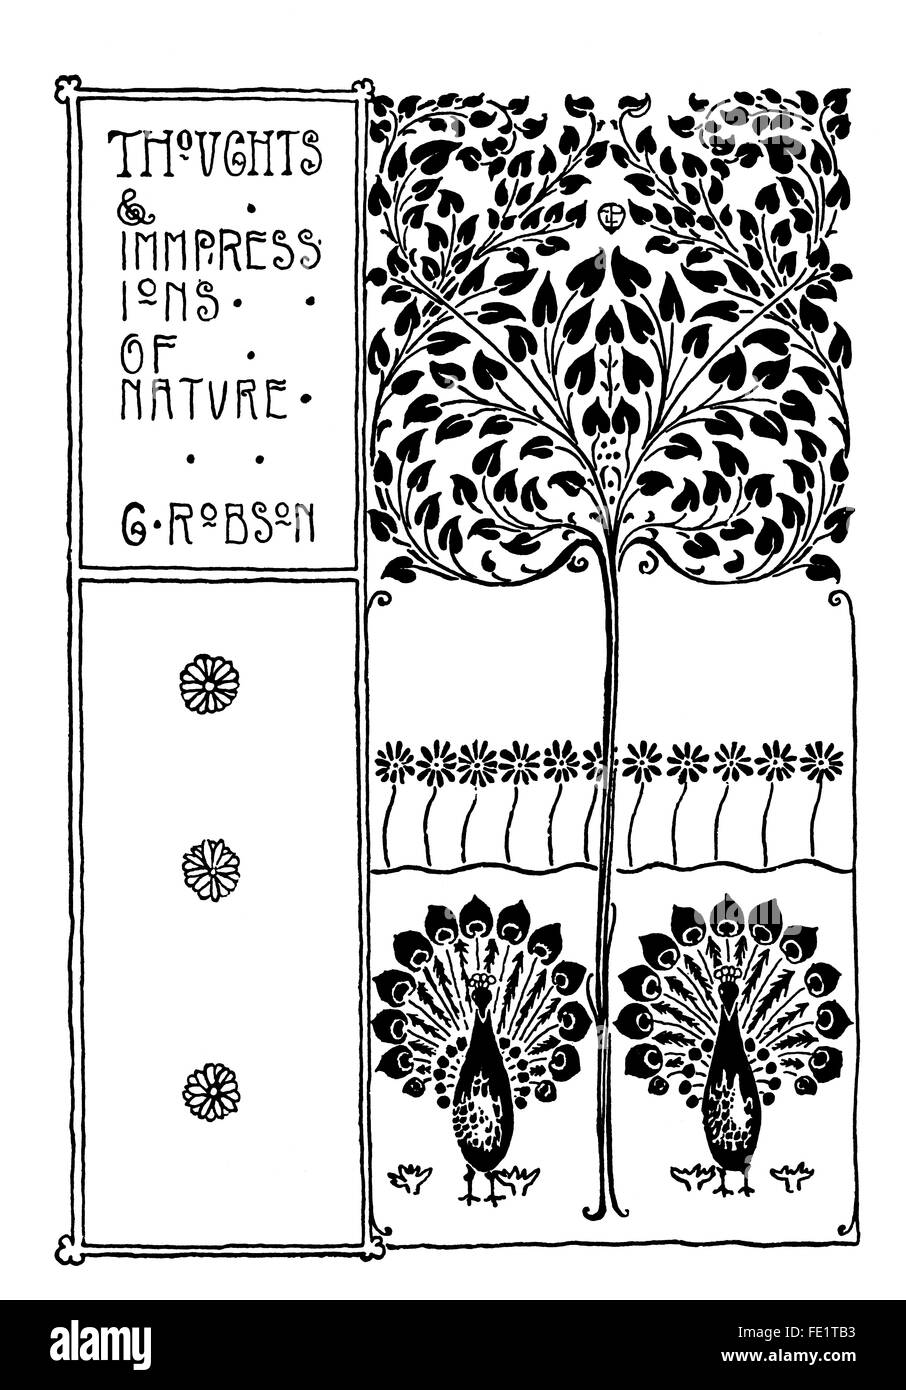 Thoughts and Impressions of Nature, book cover design by Edgar L Pattison of London, art nouveau line Illustration - Stock Image